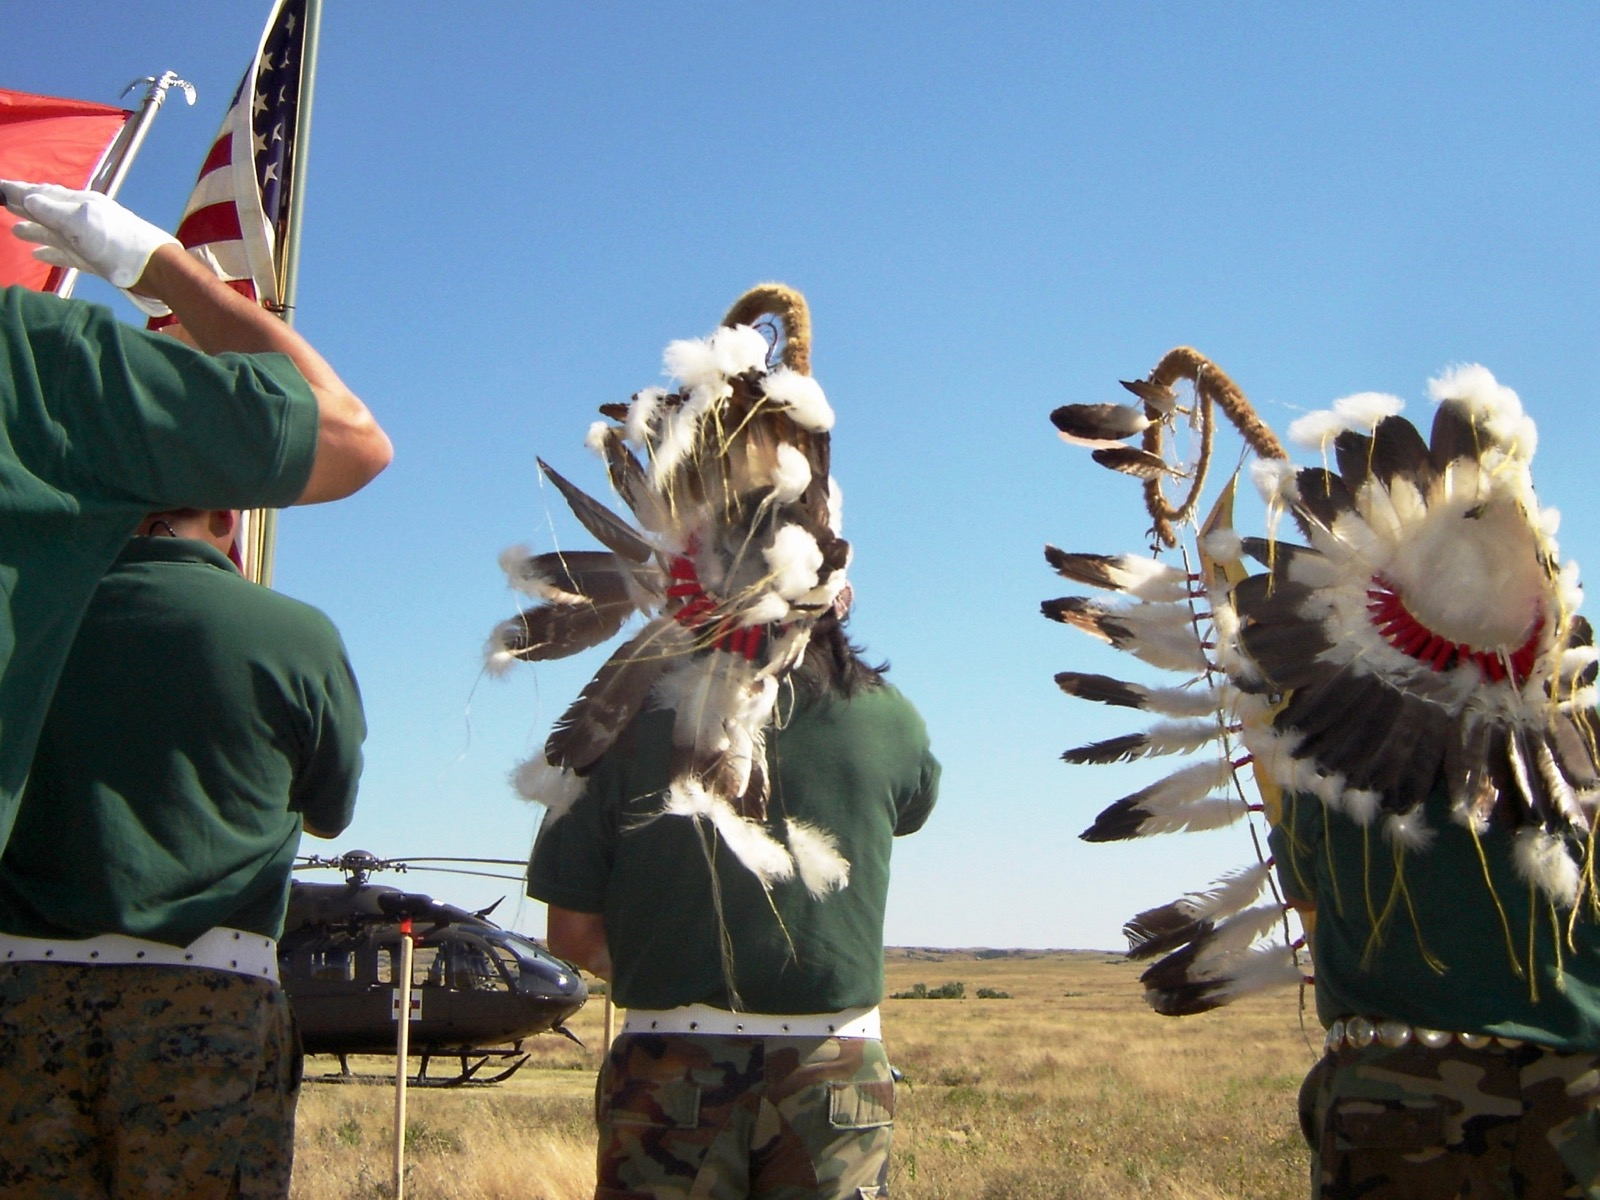 'Who do you think you are?': Lakota veteran encounters resistance at the VA